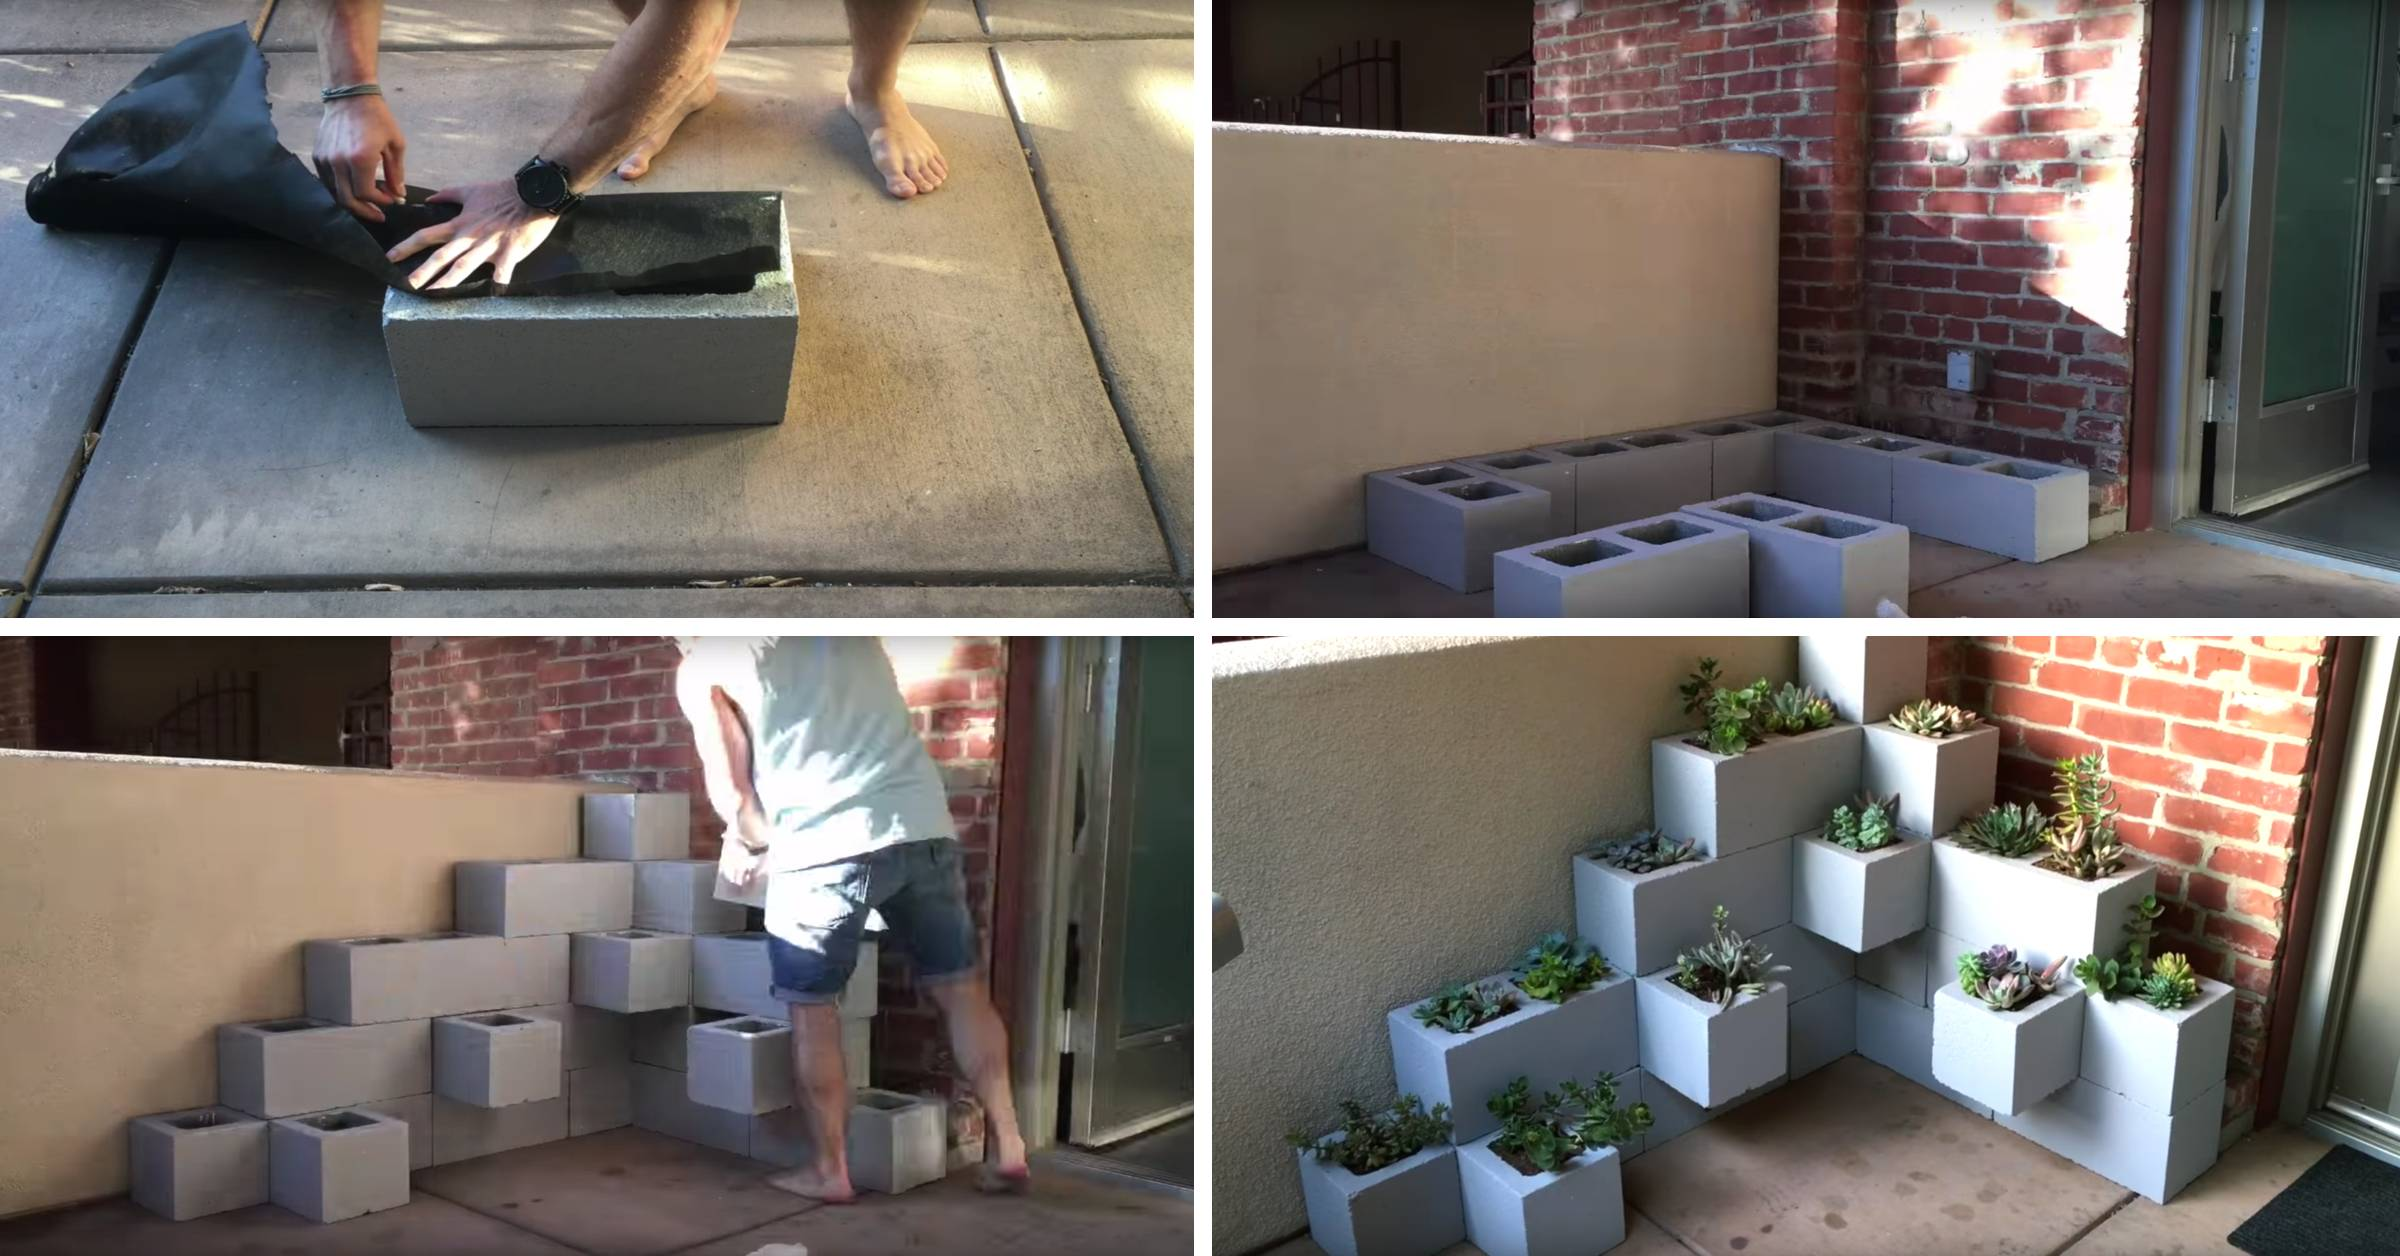 This Stunning Assembly Of Cinder Blocks And Succulents Are All Your Front Porch Needs